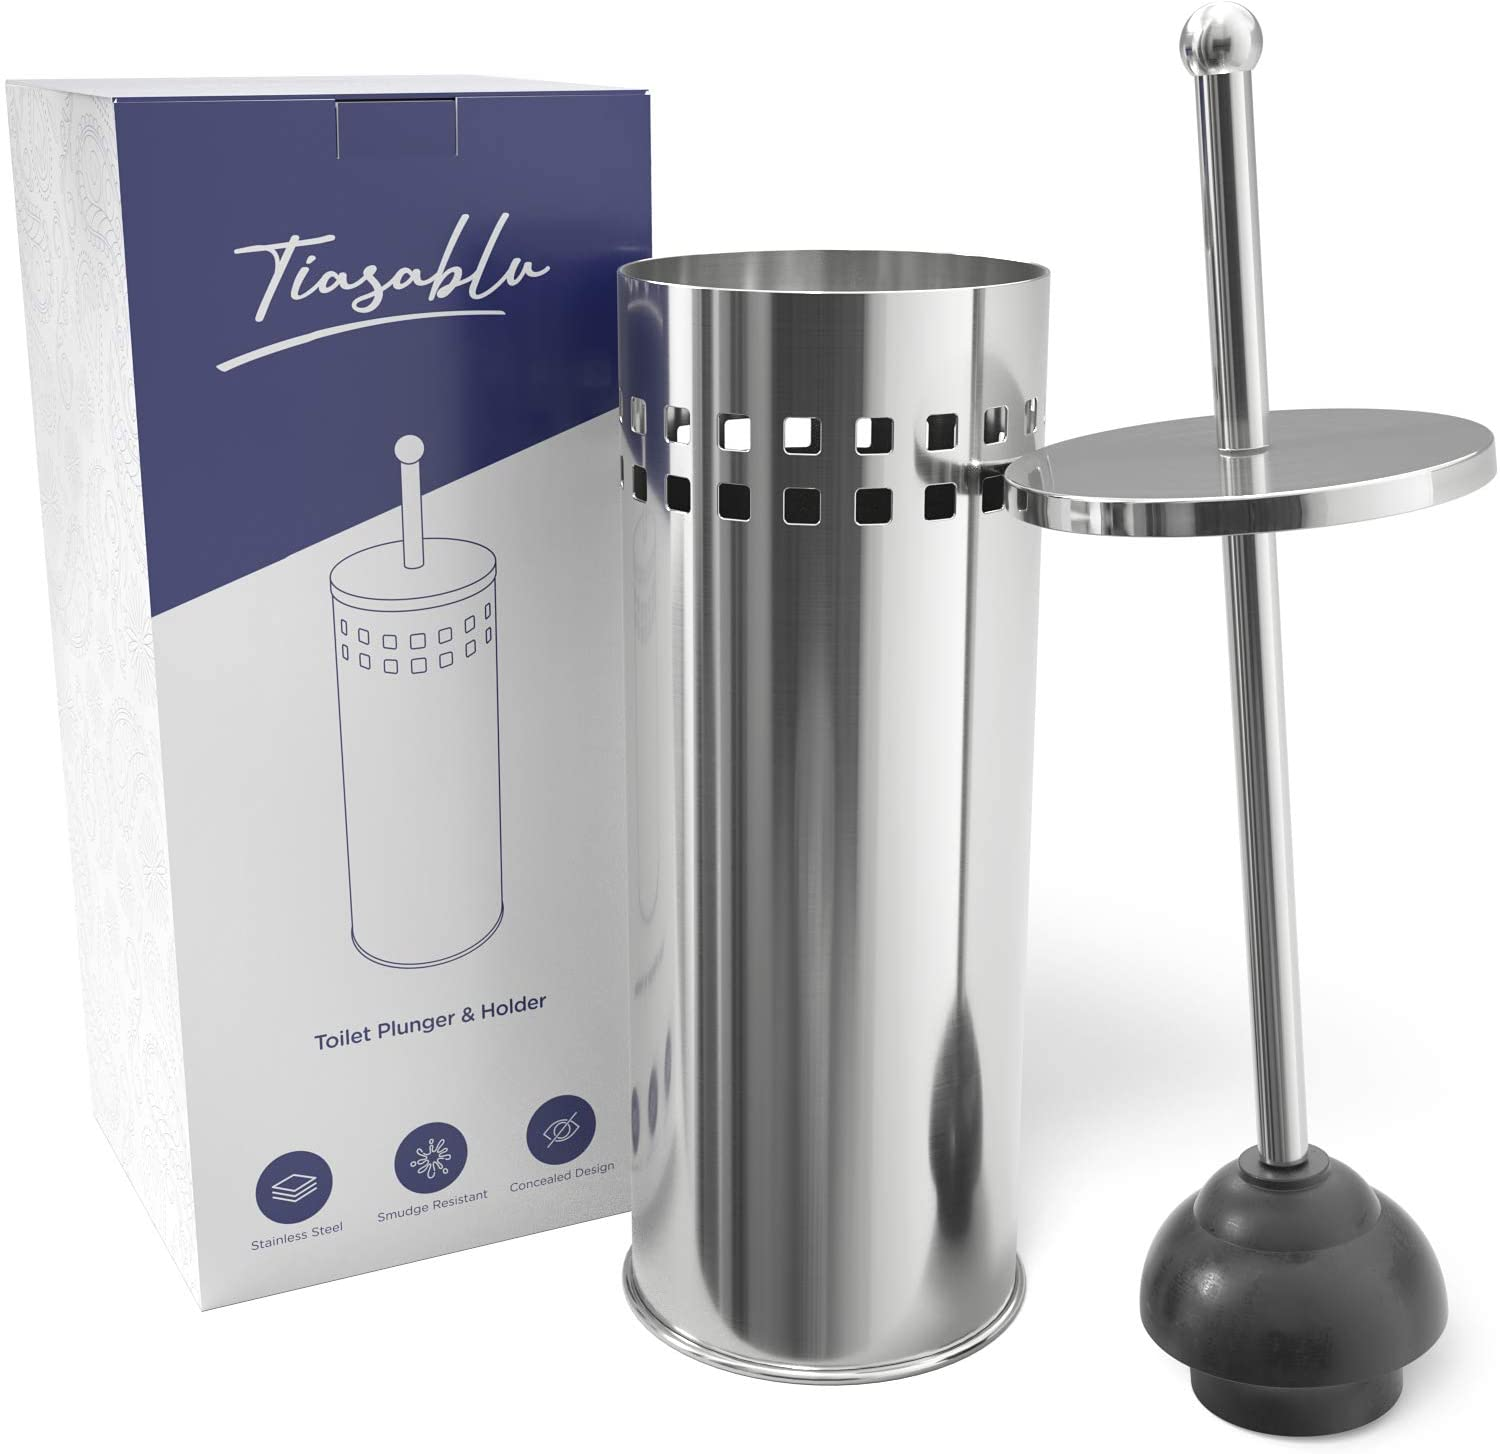 Tiasablu Plunger with Concealed Holder - Heavy Duty, No Splash Back, Long Handle - Discreet Toilet Plunger for Bathroom